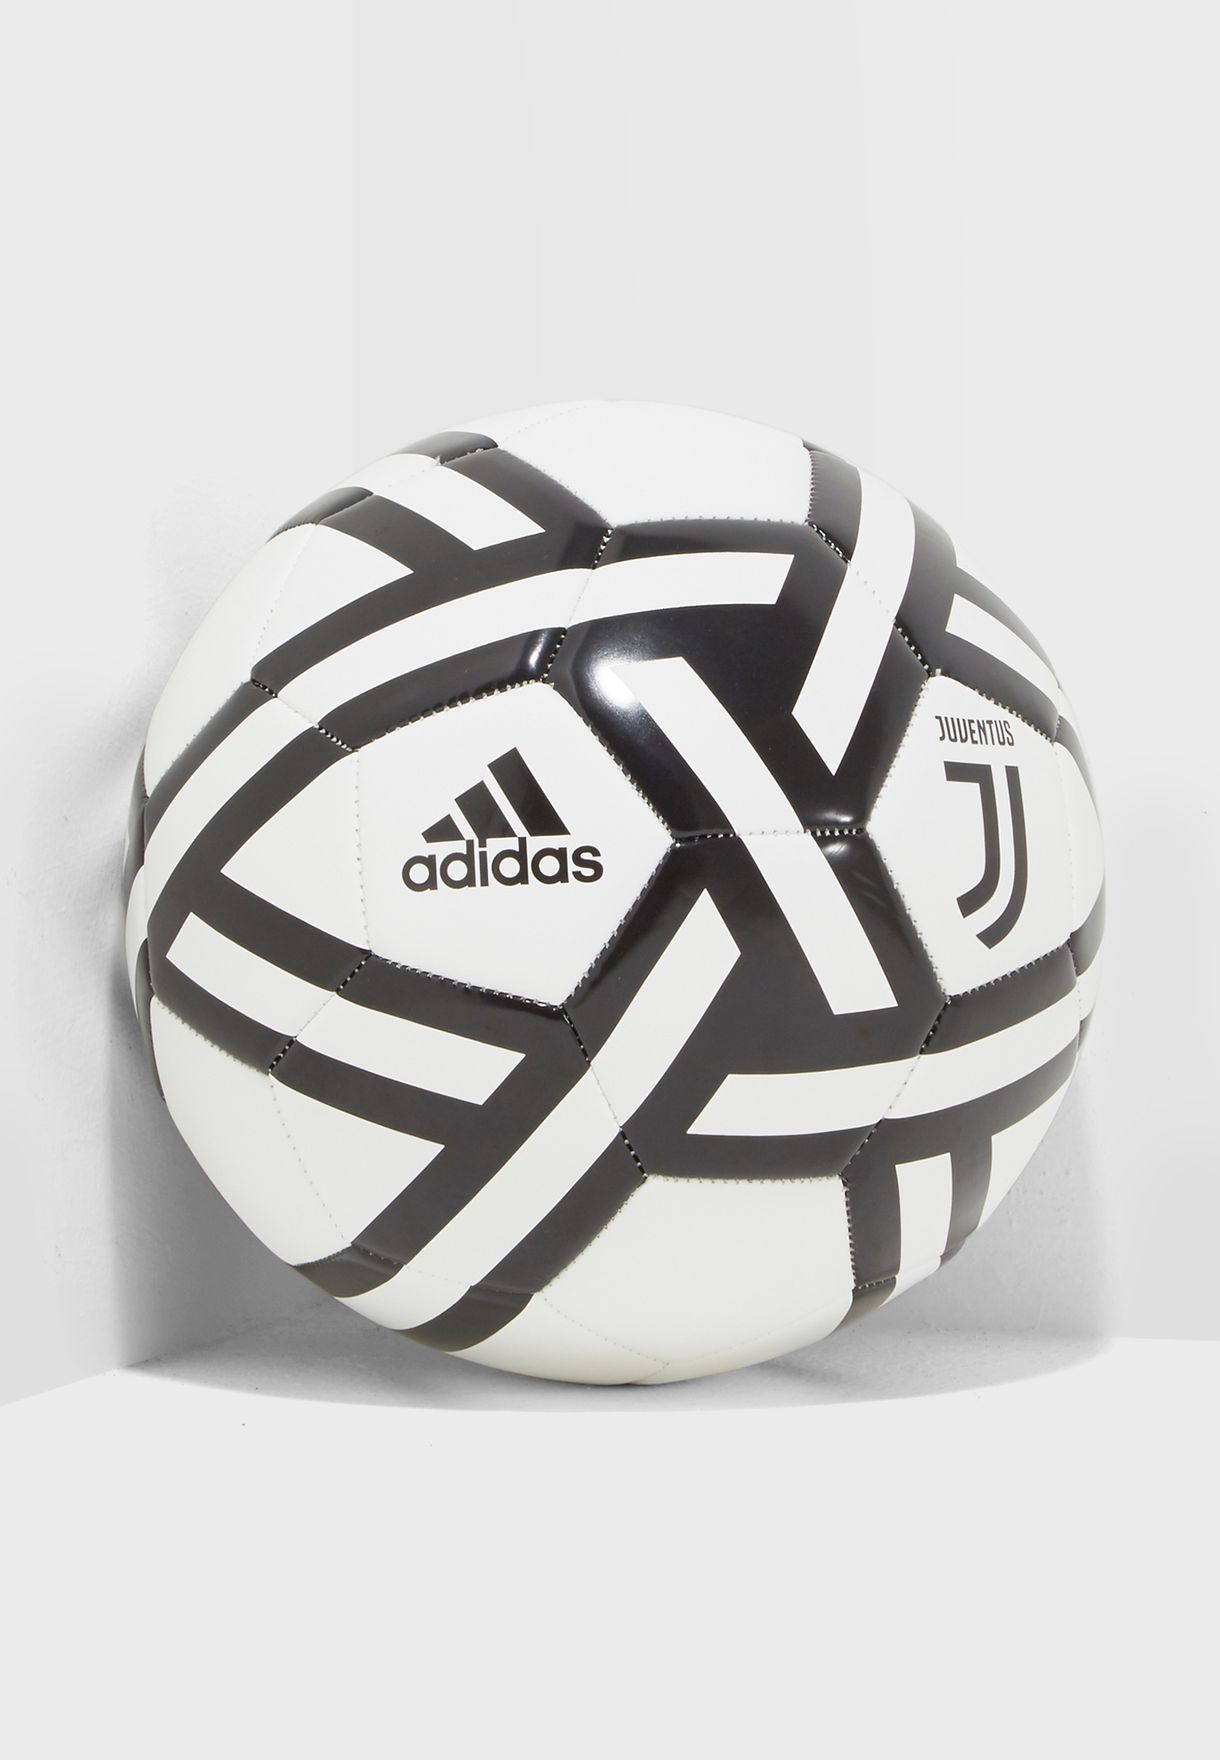 9824be85d Shop adidas white Juventus Football CW4158 for Men in UAE - AD476AC96VYL